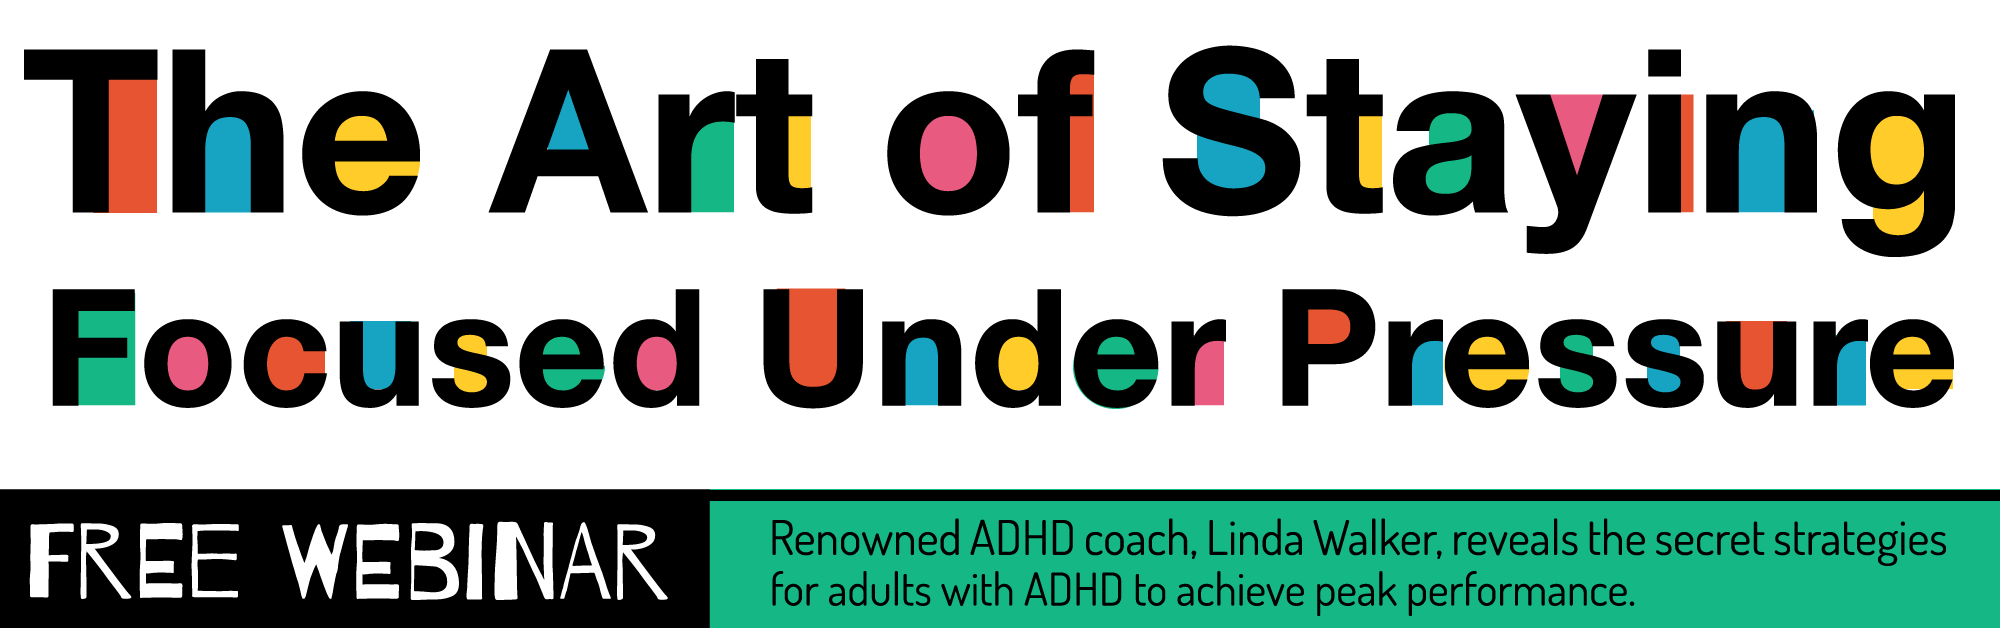 Join Linda Walker for the free Webinar – Creative Genius: The Art of Staying Focused Under Pressure (without Burning Out). Learn how to focus at will and achieve peak performance in this Master Class for entrepreneurs and professionals with adult ADHD.